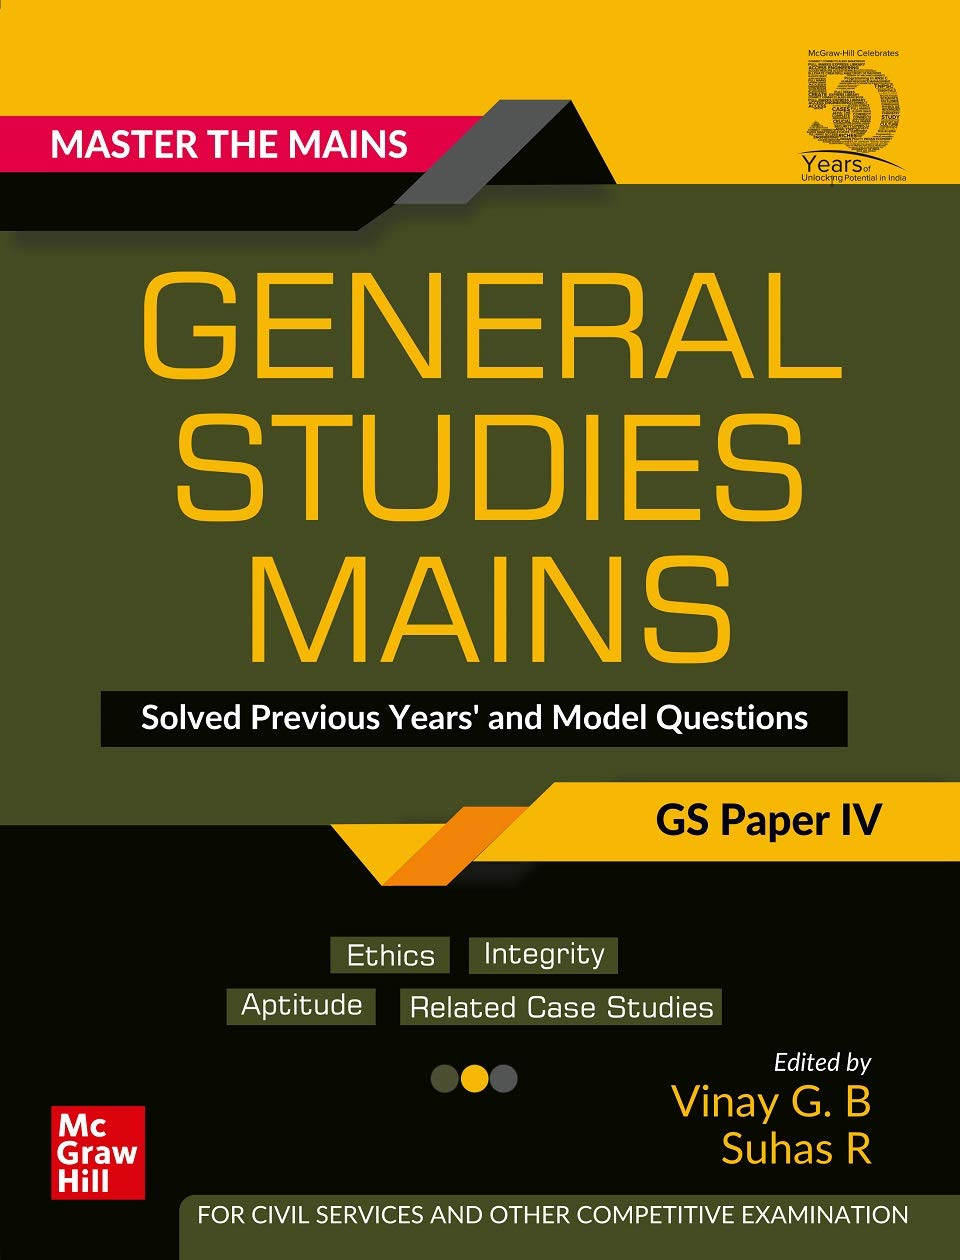 Master The Mains – General Studies Mains (GS Paper IV): Solved Previous Years' and Model Questions | UPSC Civil Services Exam